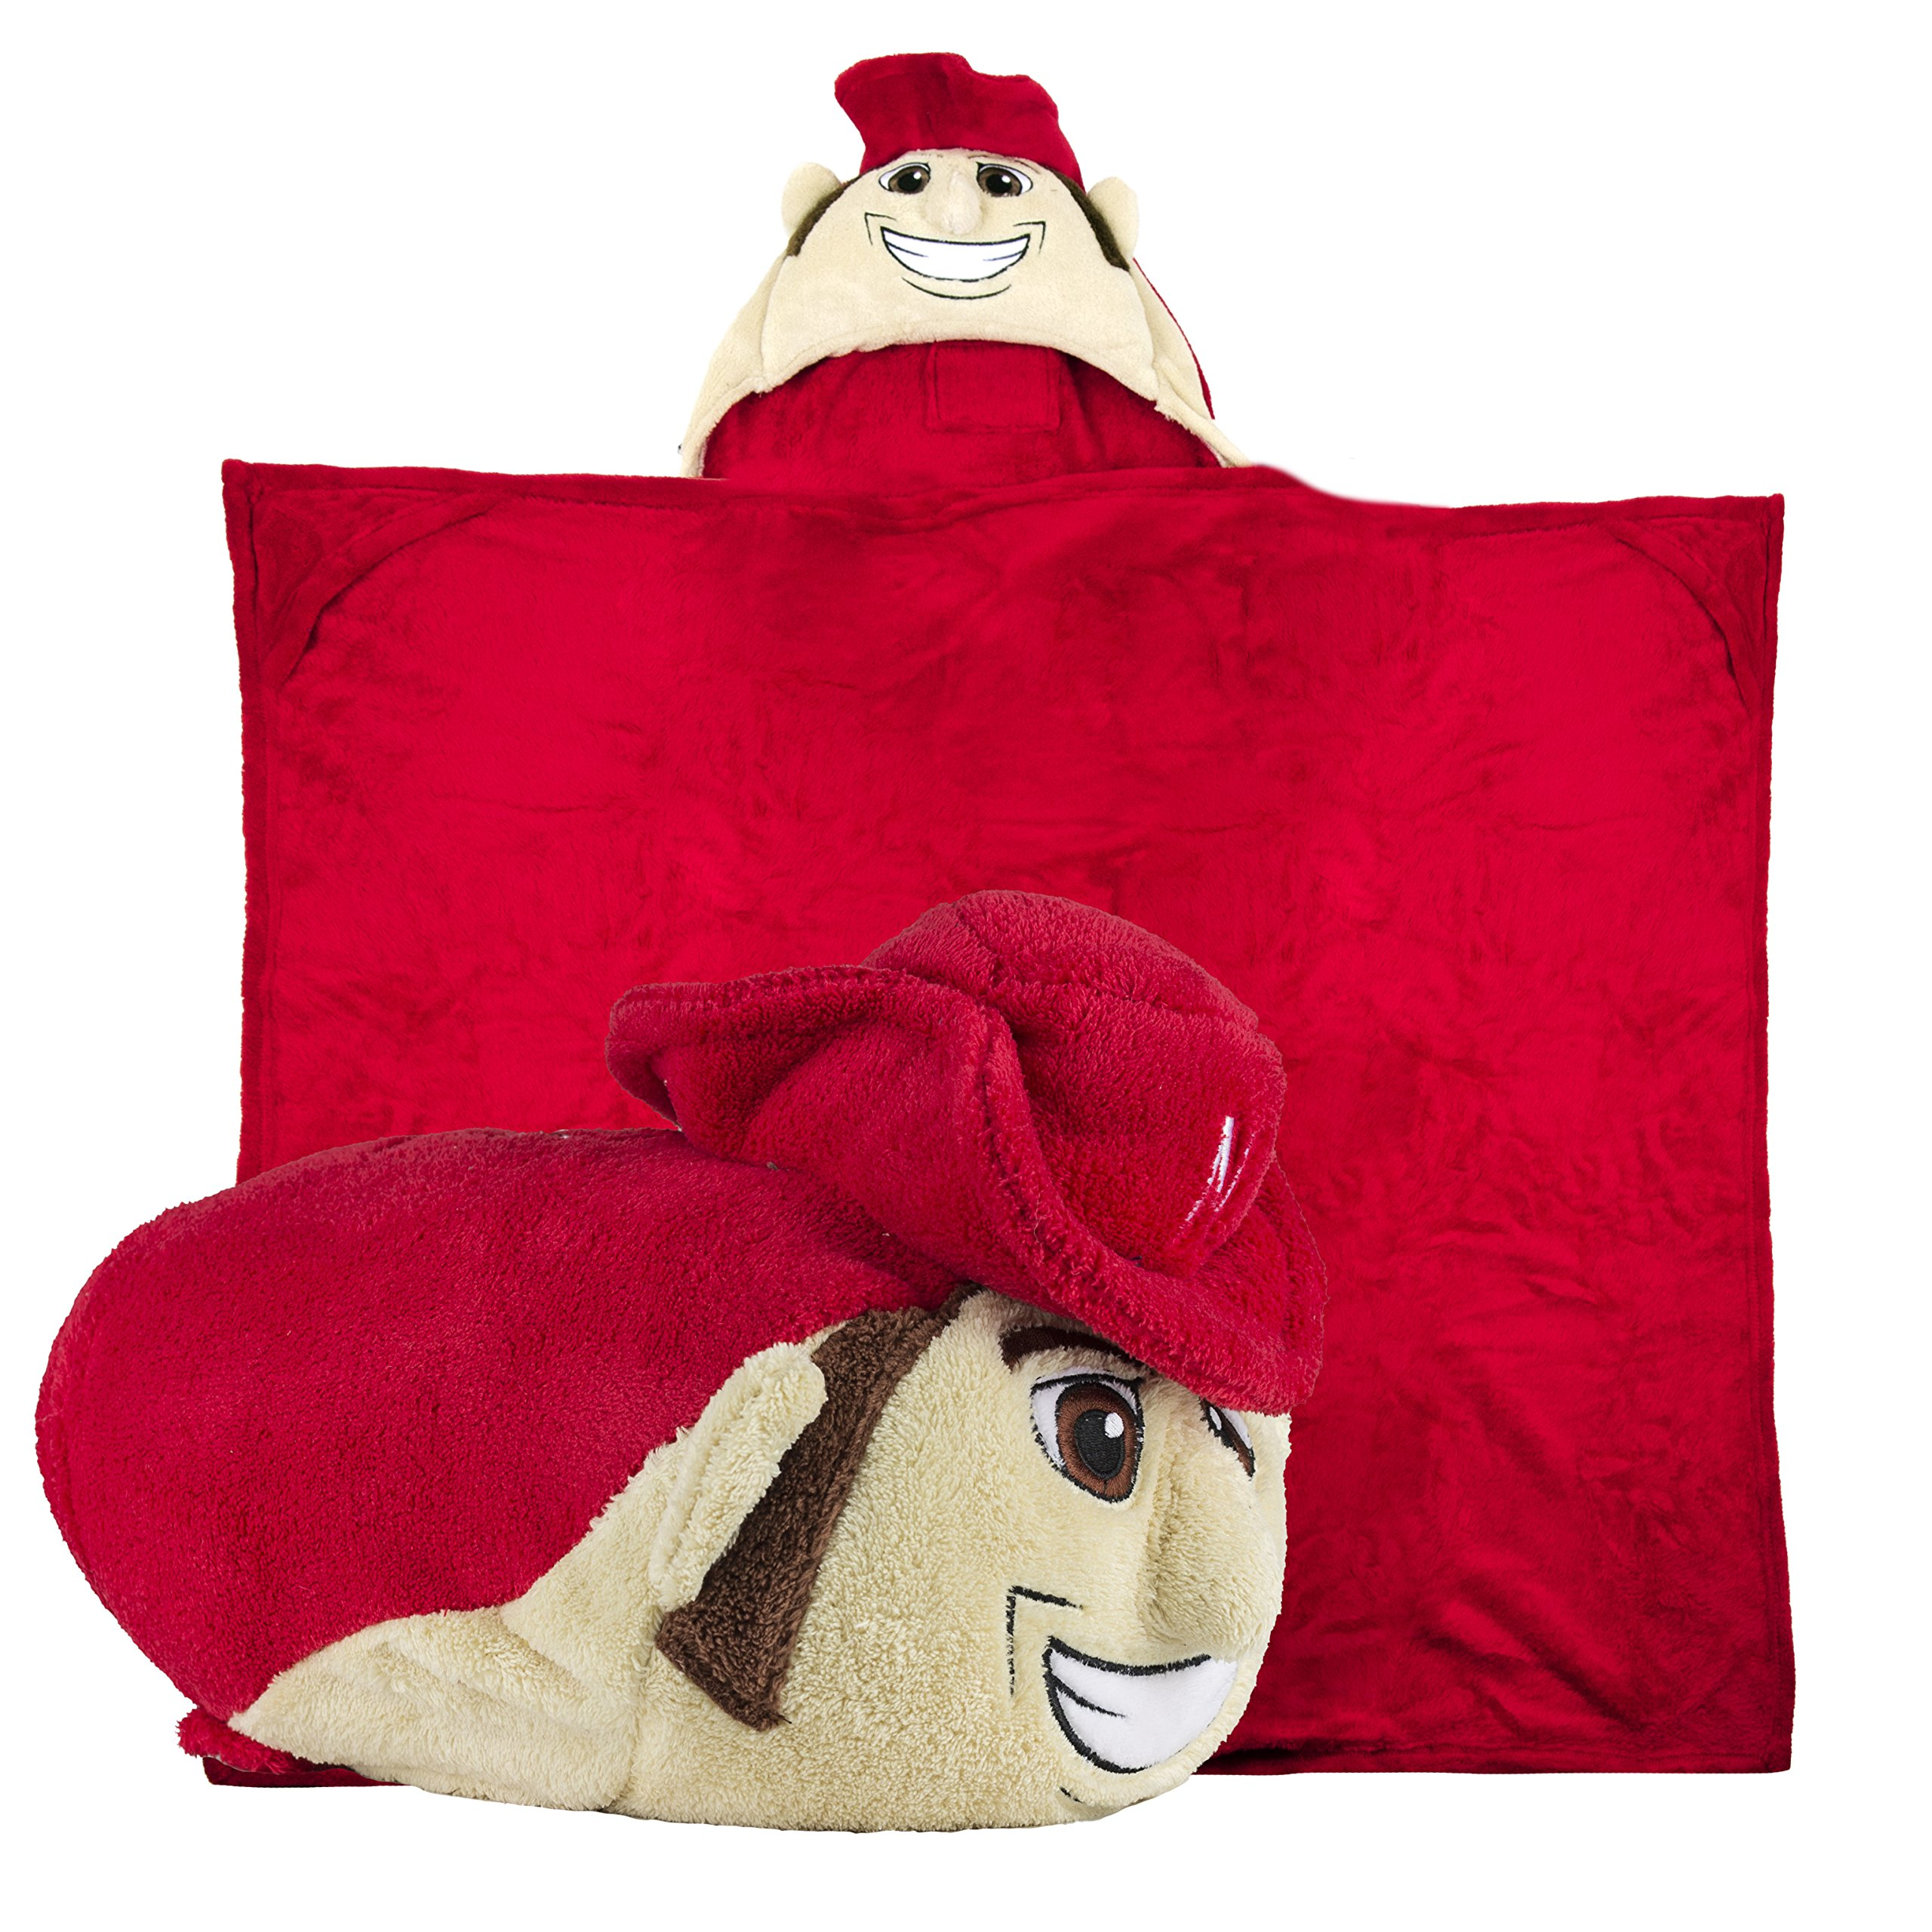 Comfy Critters Stuffed Animal Blanket – College Mascot, University of Nebraska 'Herbie Husker' – Kids huggable pillow and blanket perfect for the big game, tailgating, pretend play, and much more